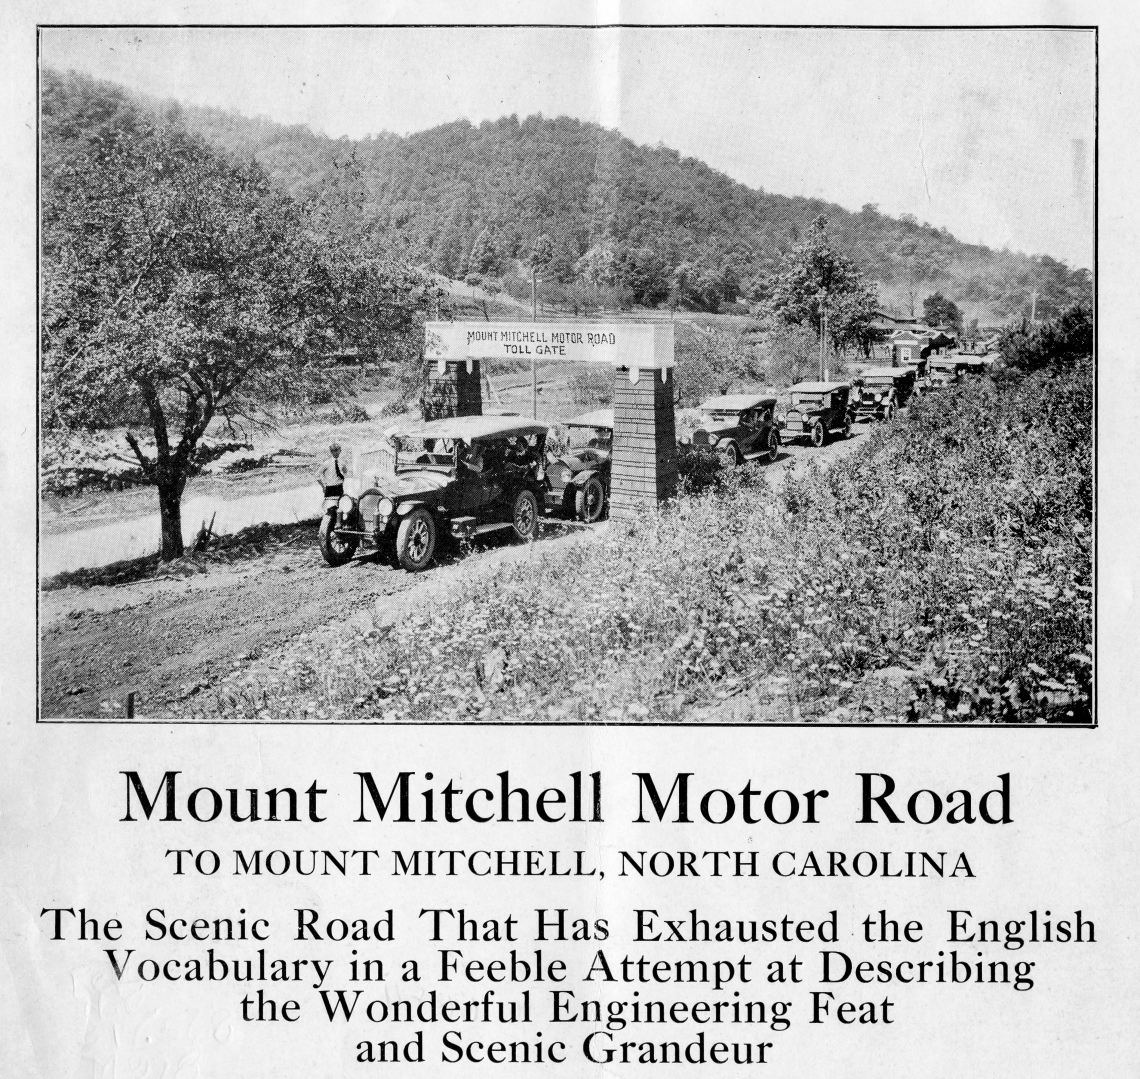 Mount Mitchell Motor Road: to Mount Mitchell, North Carolina